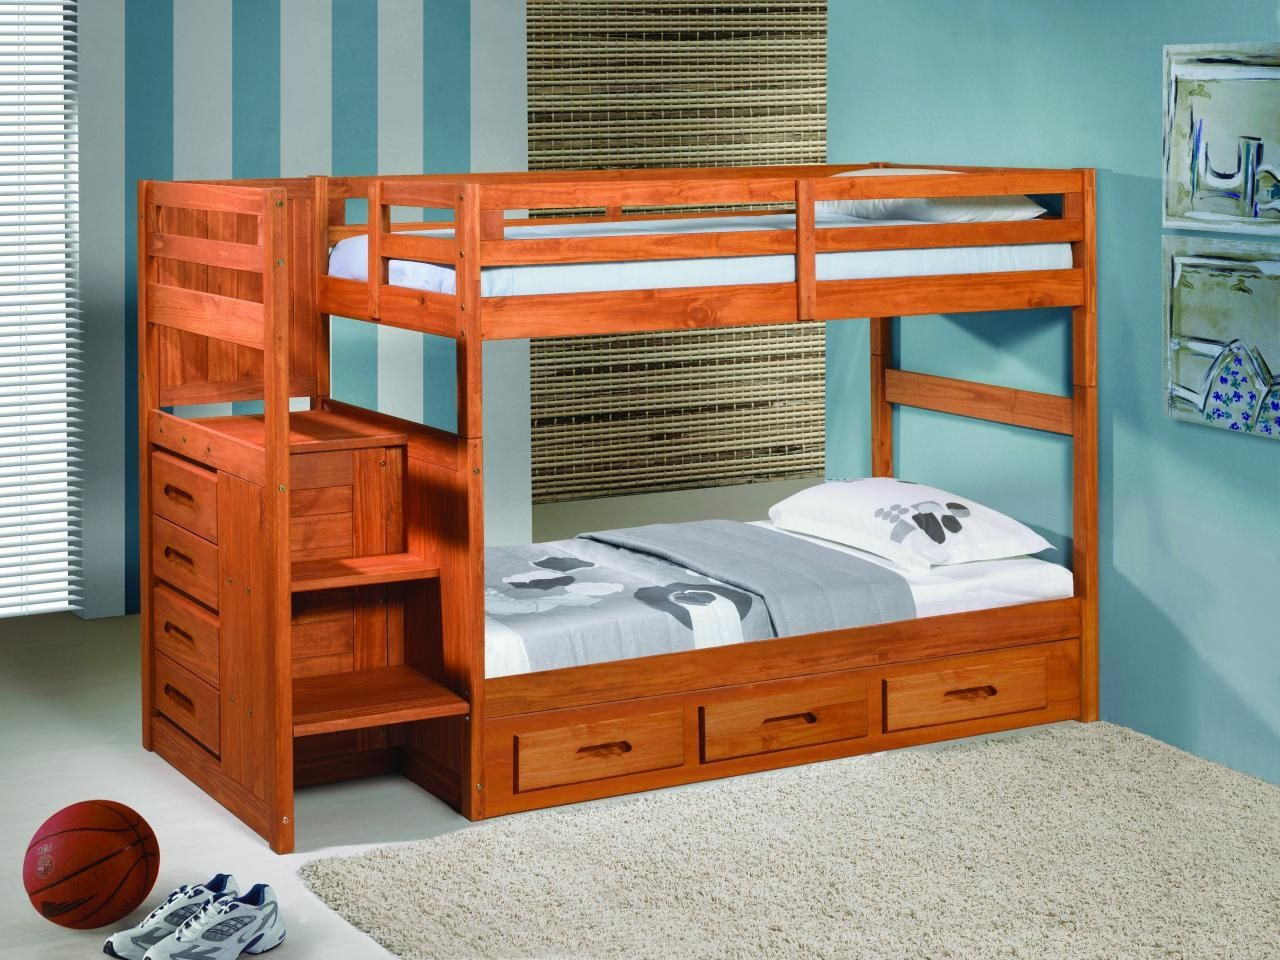 used kids bunk beds - best interior paint brand check more at http